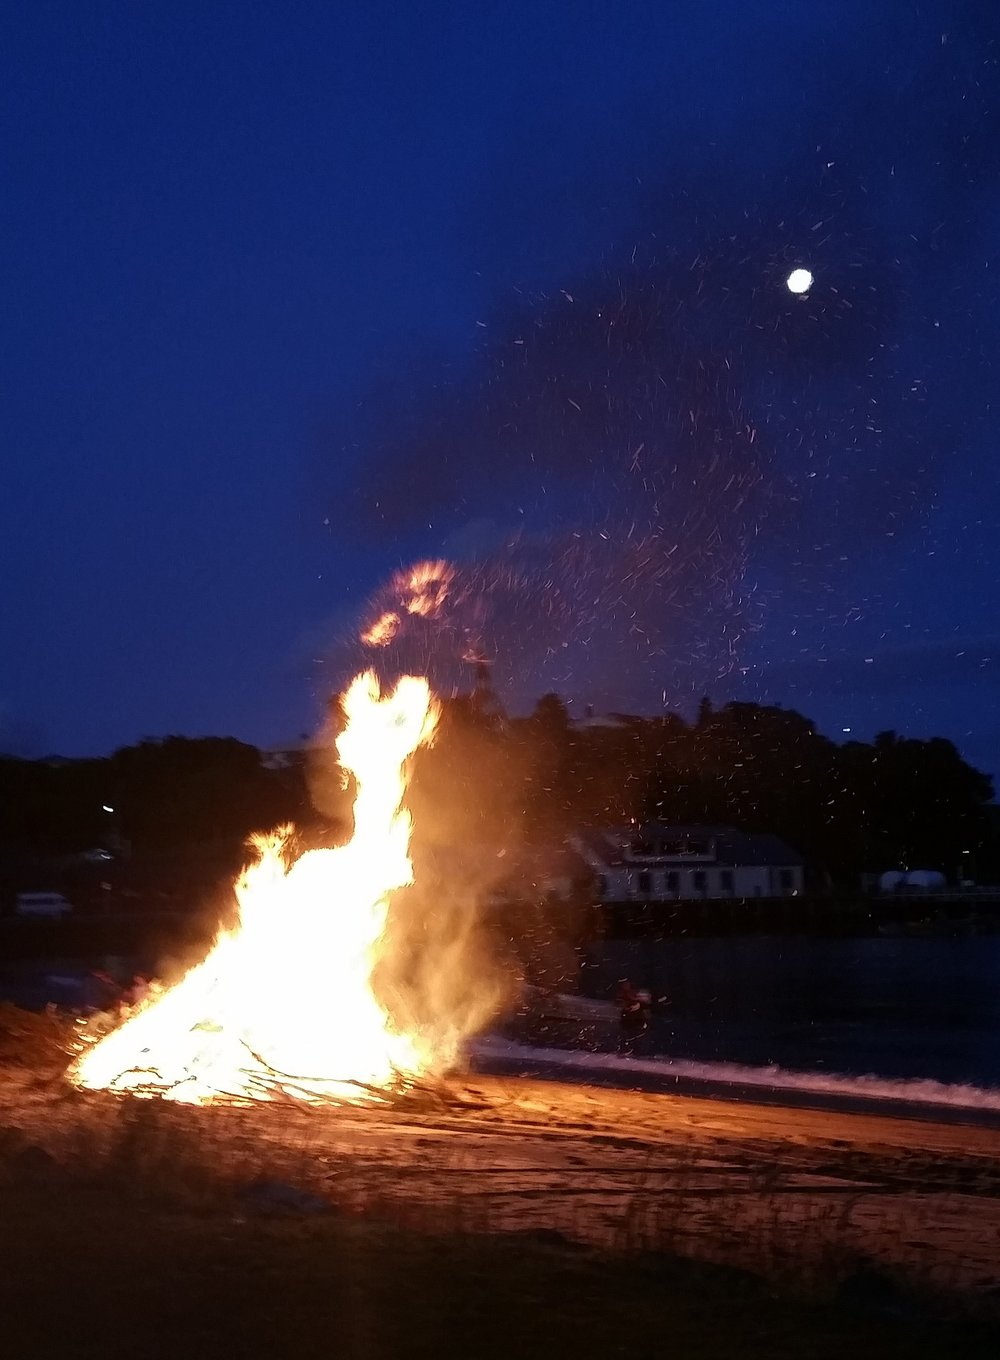 The bonfire on the beach in Oban was spectacular! The sparks were like thousands of fireflies.